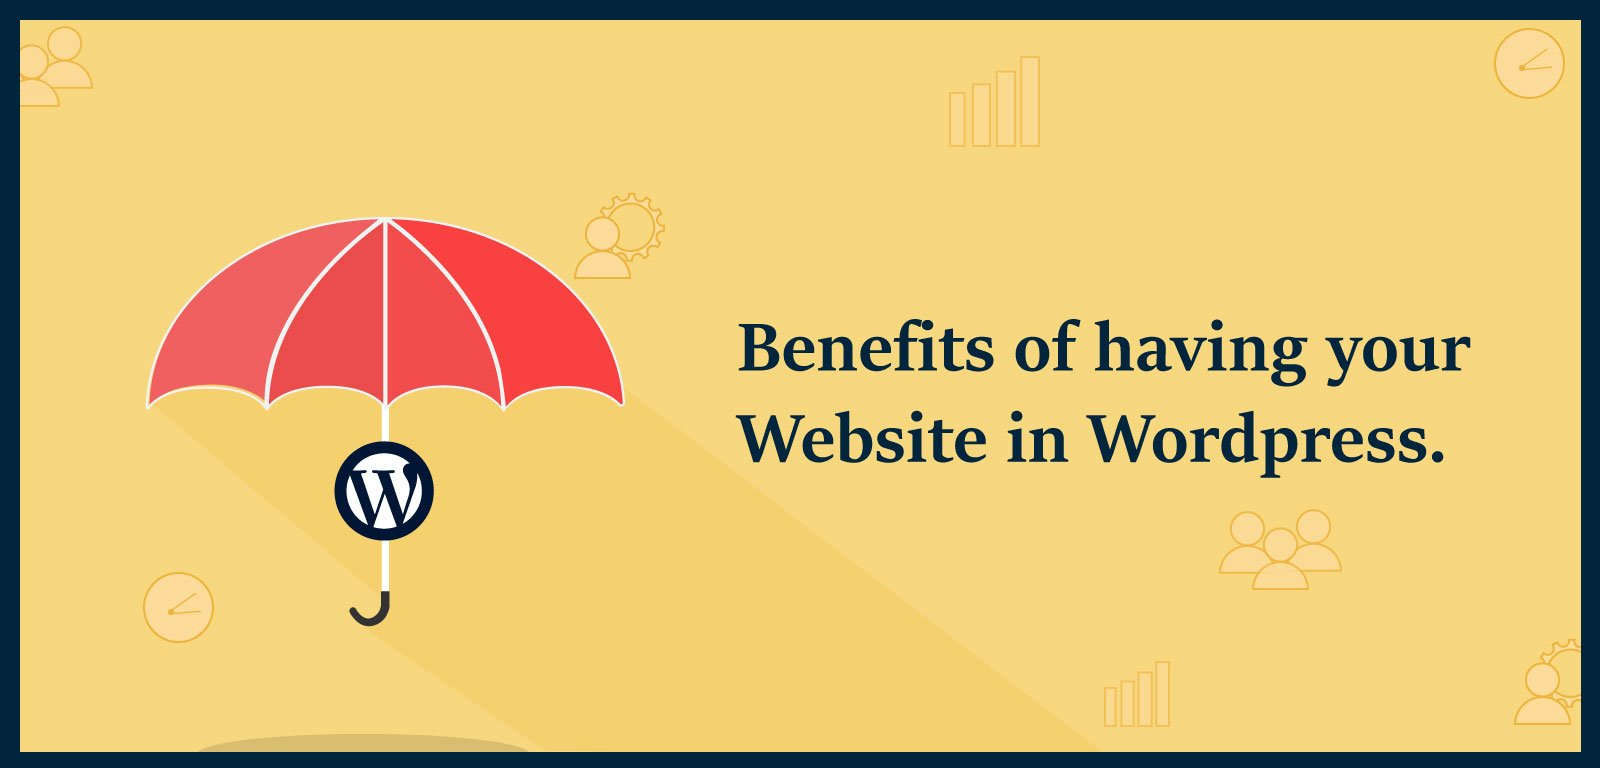 Benefits of having your website in WordPress